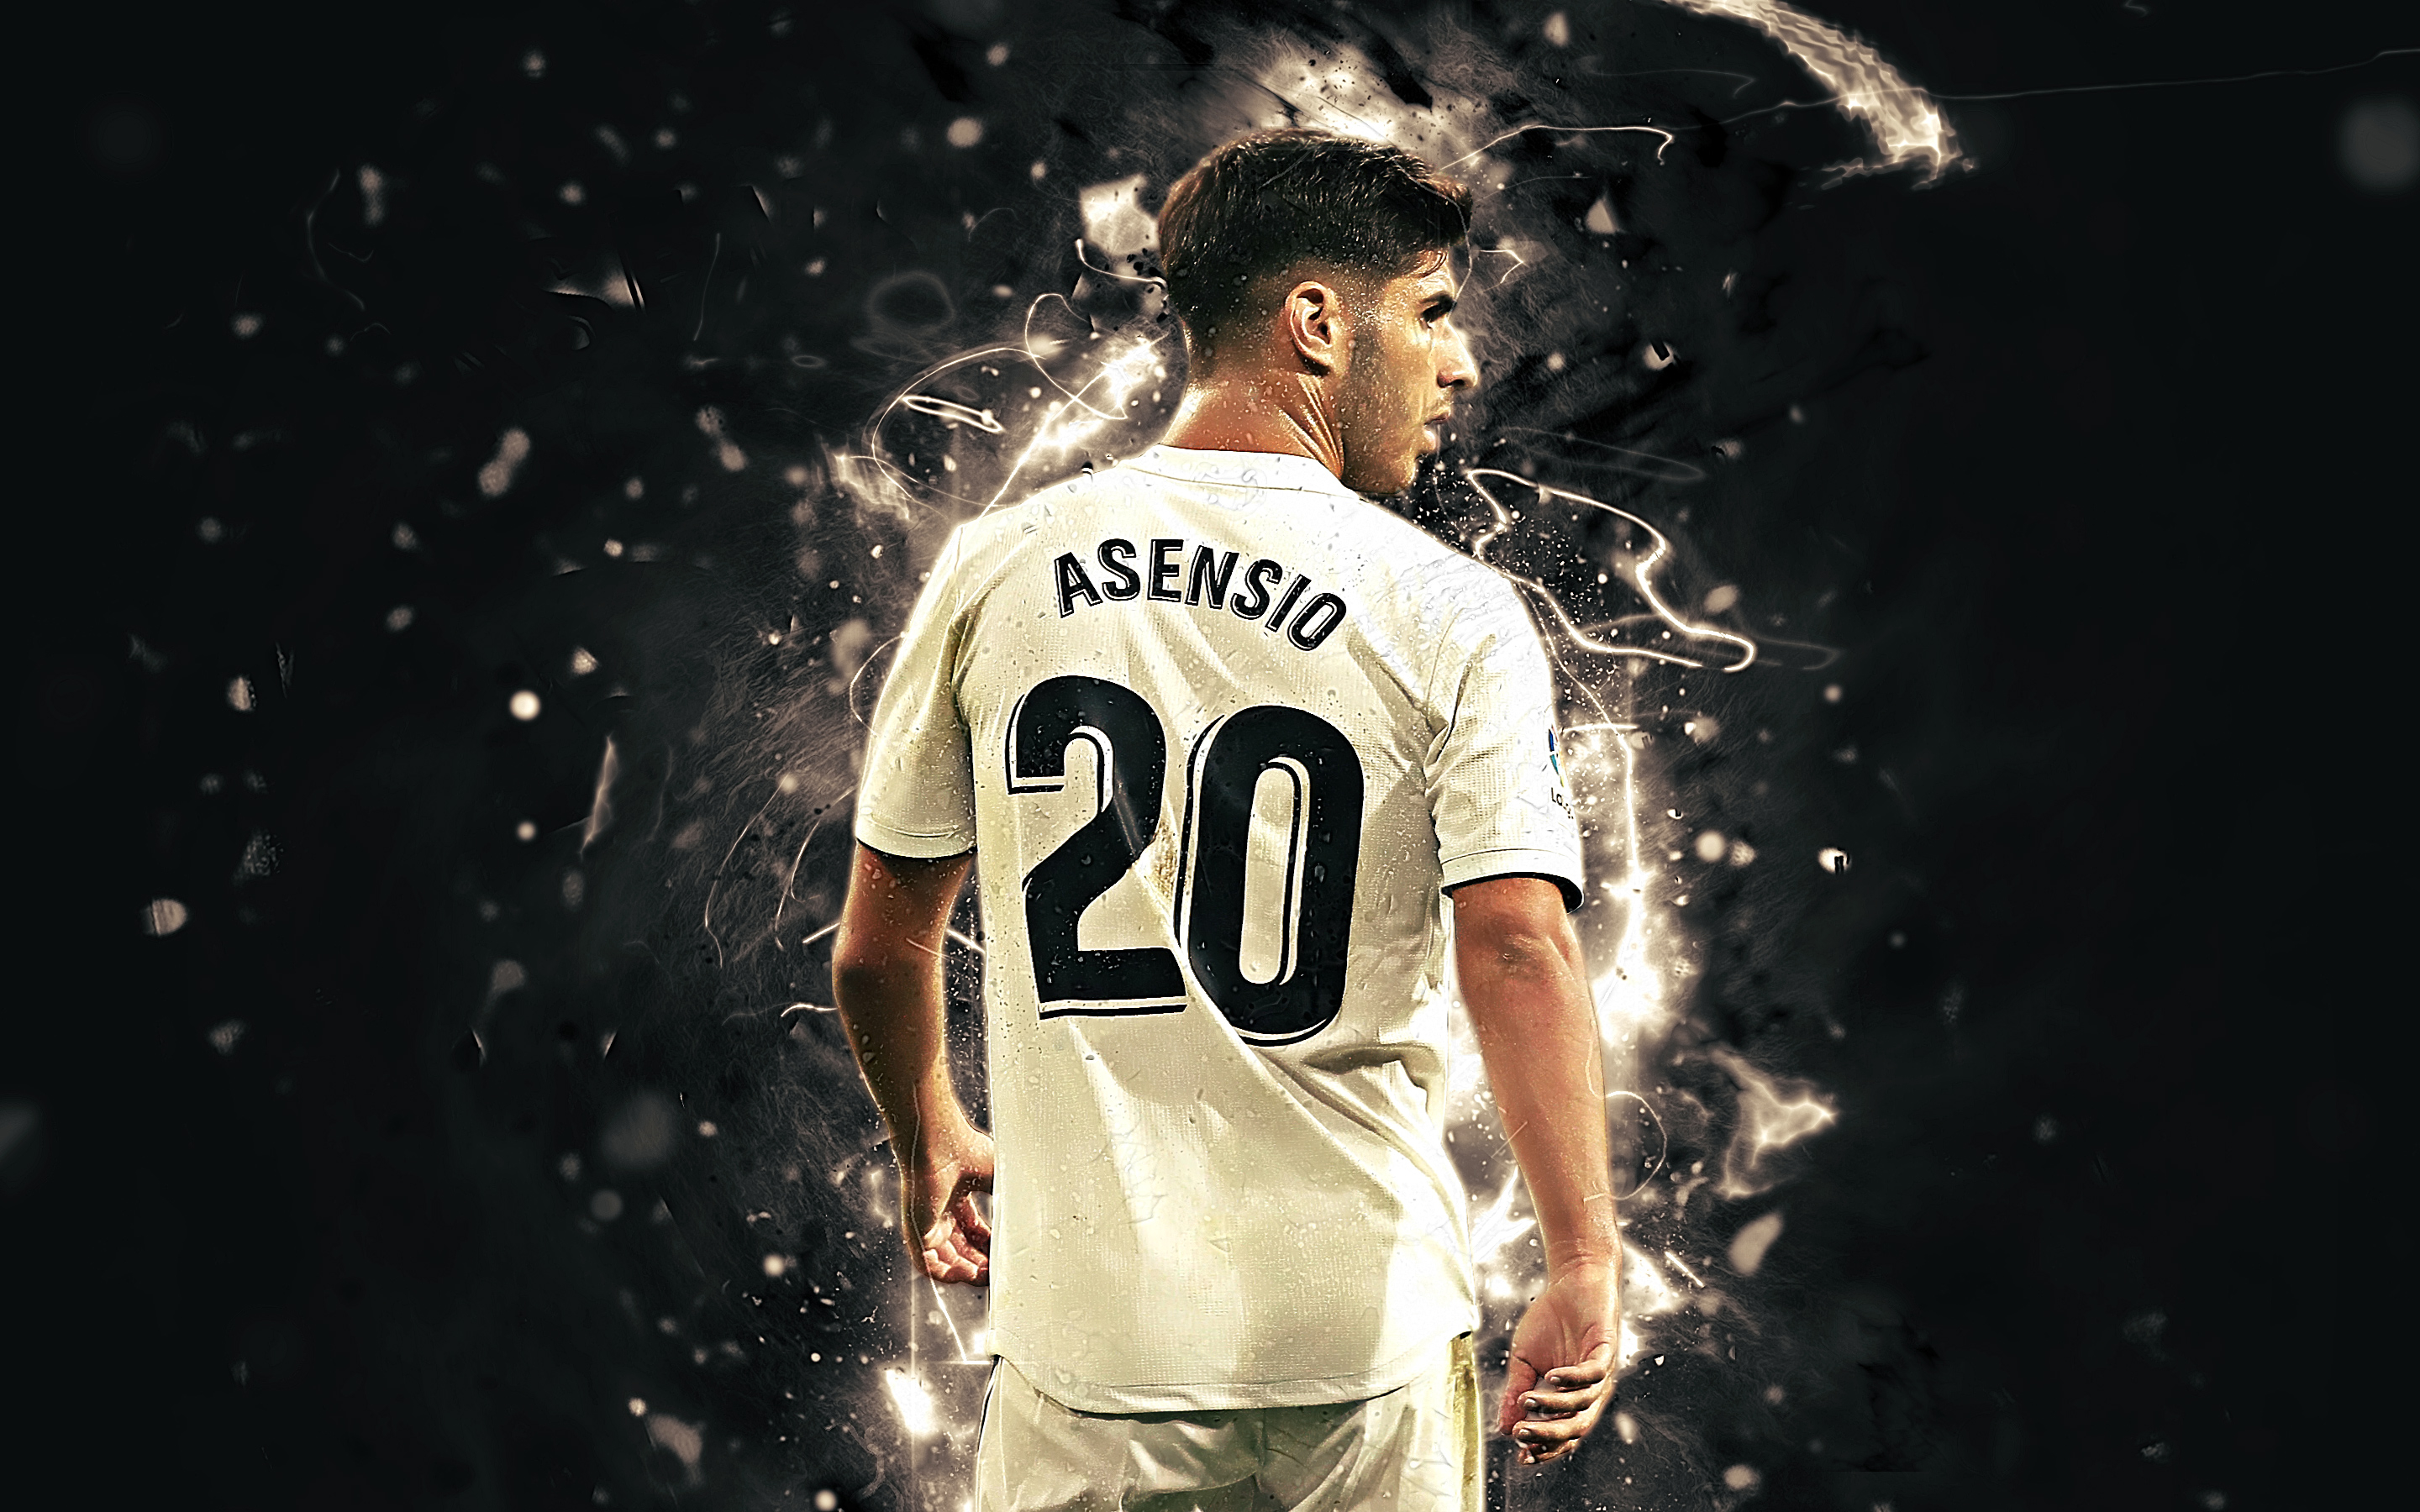 Marco Asensio Willemsen Real Madrid Fondo De Pantalla Hd